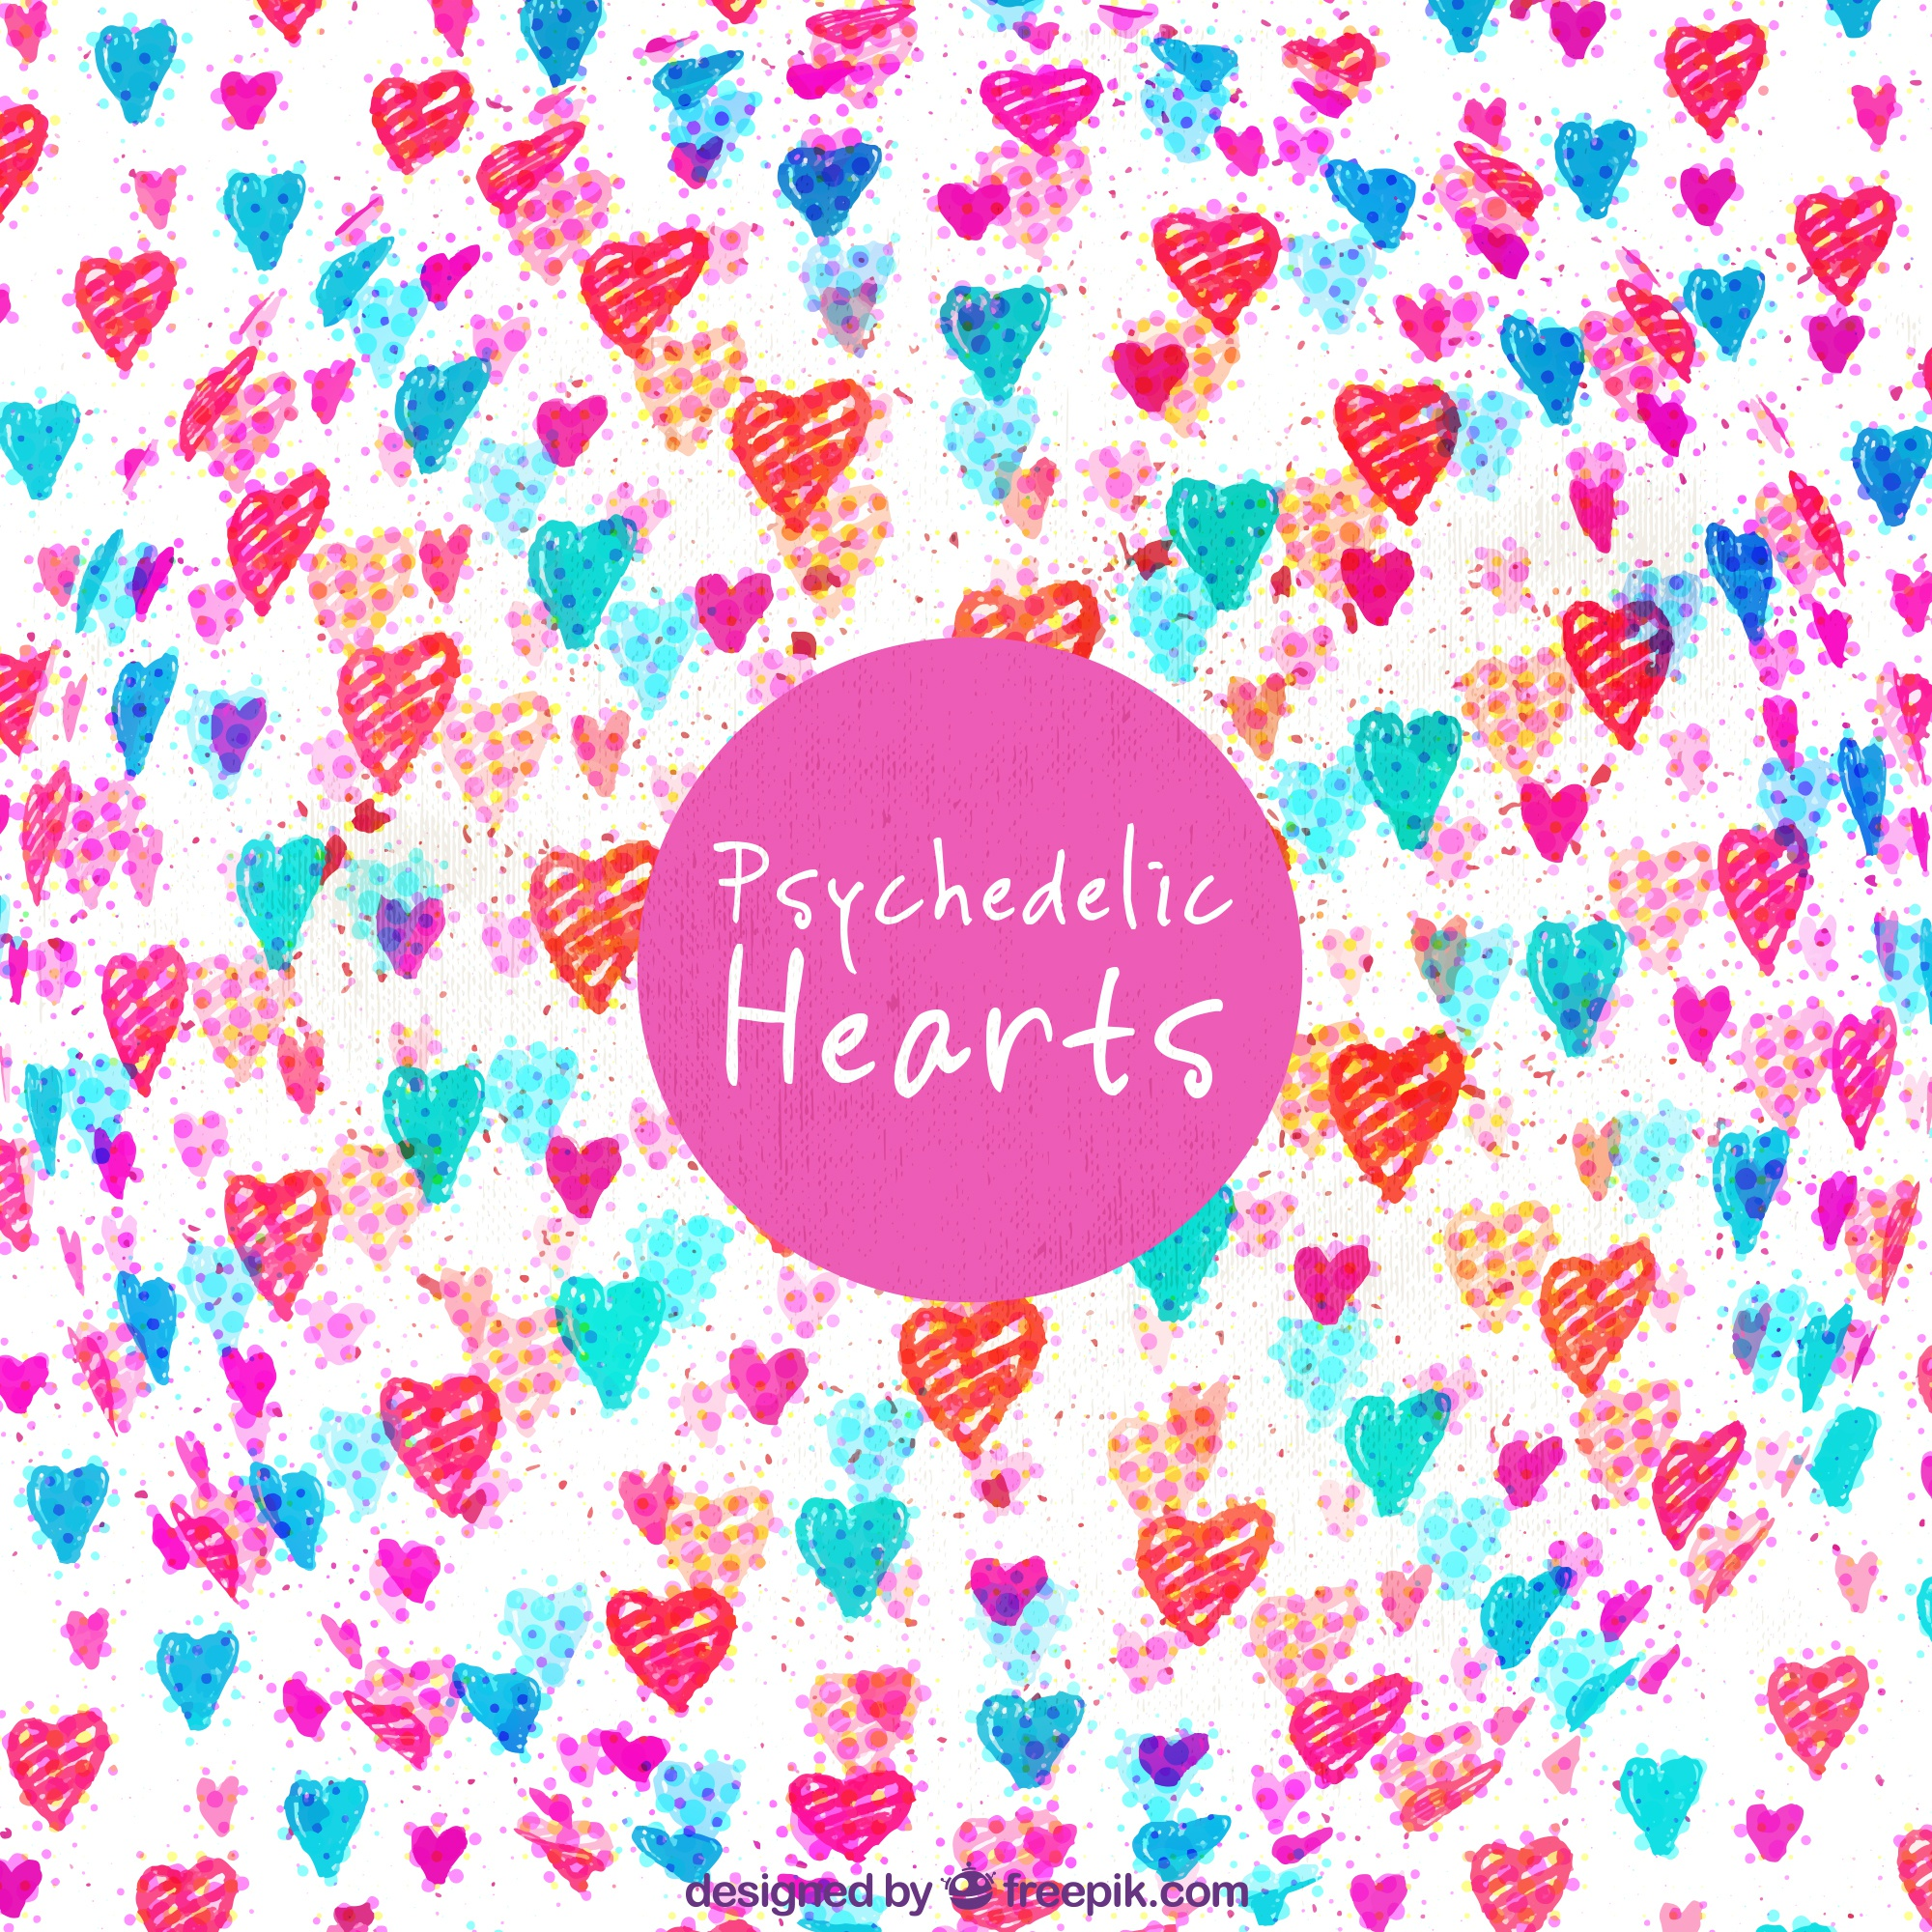 Background of hand drawn colored hearts